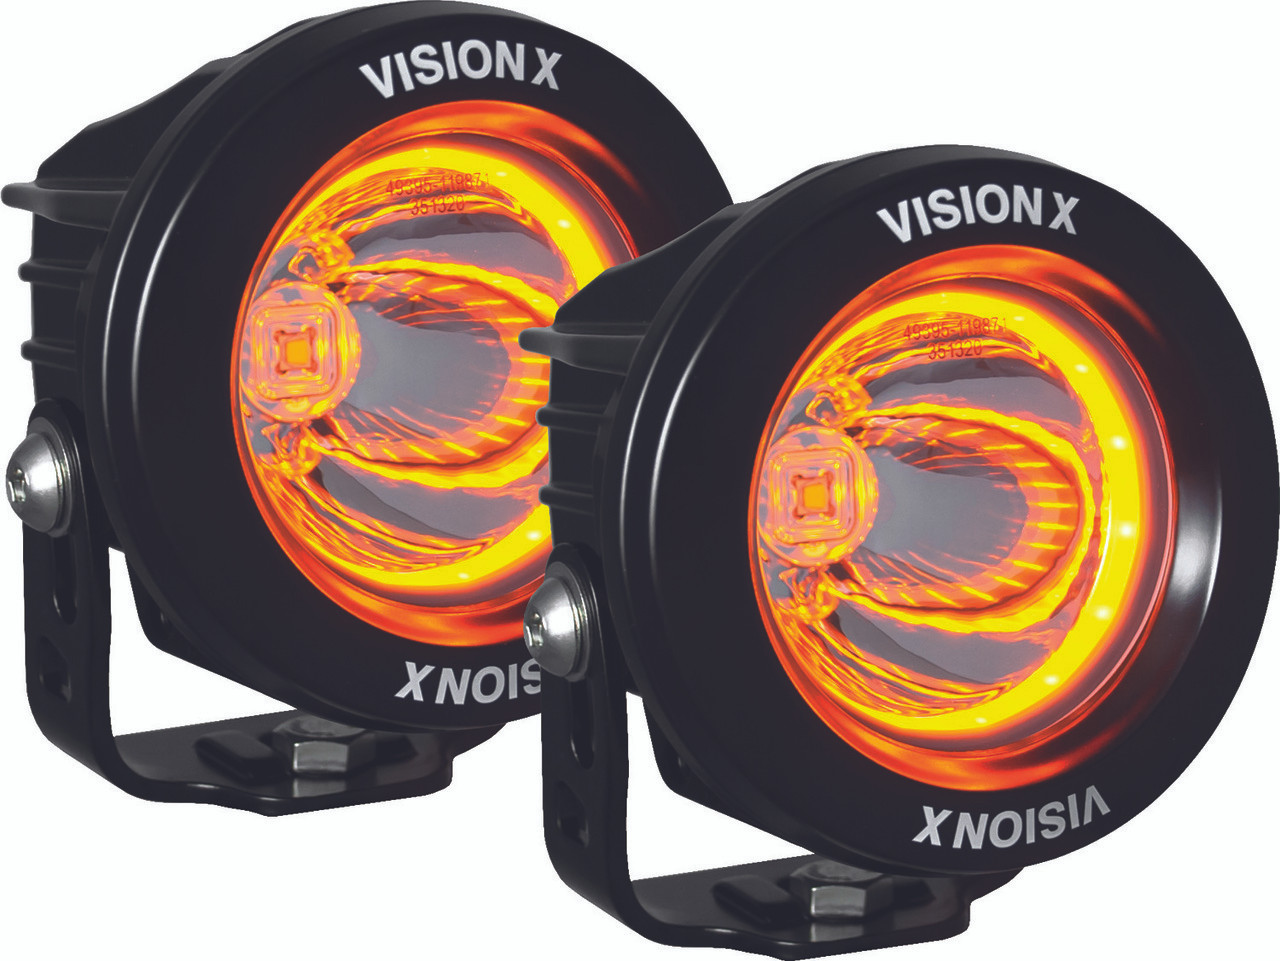 Kit Of Two 37 Optimus Round Amber Halo Series Prime Black 10 Watt Wiring Lights Led Light 15 Degree Beam Emark Certified With Dual Wire Harness Vision X